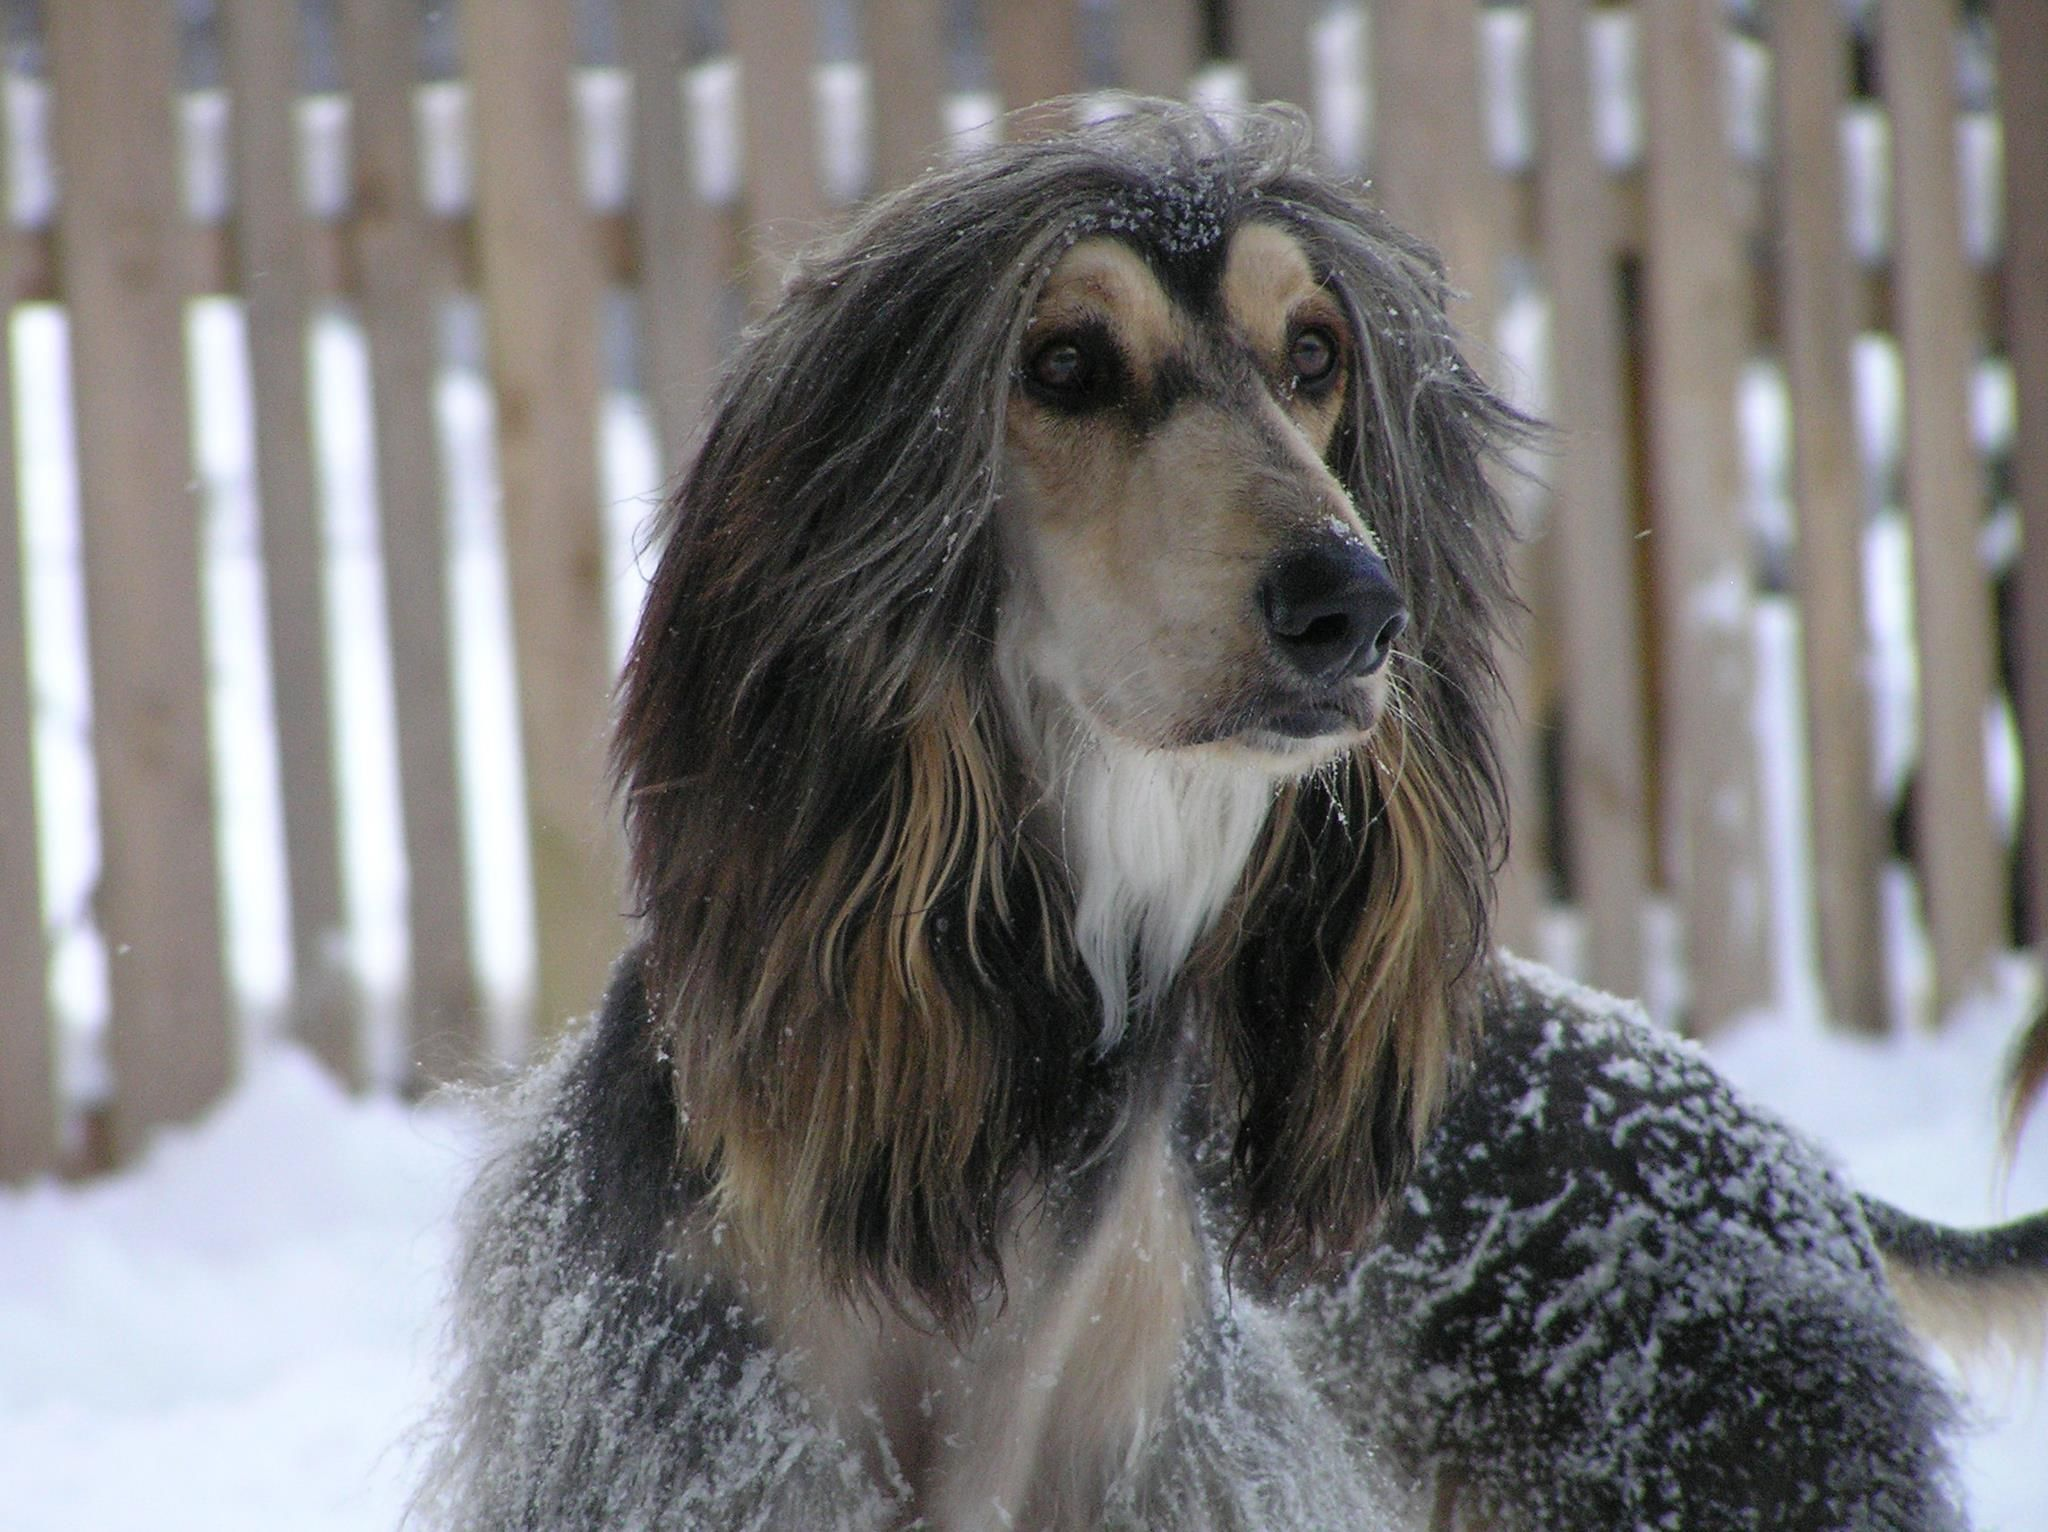 Pin By Patricia Price On Pets Dog Friends Afghan Hound Animal